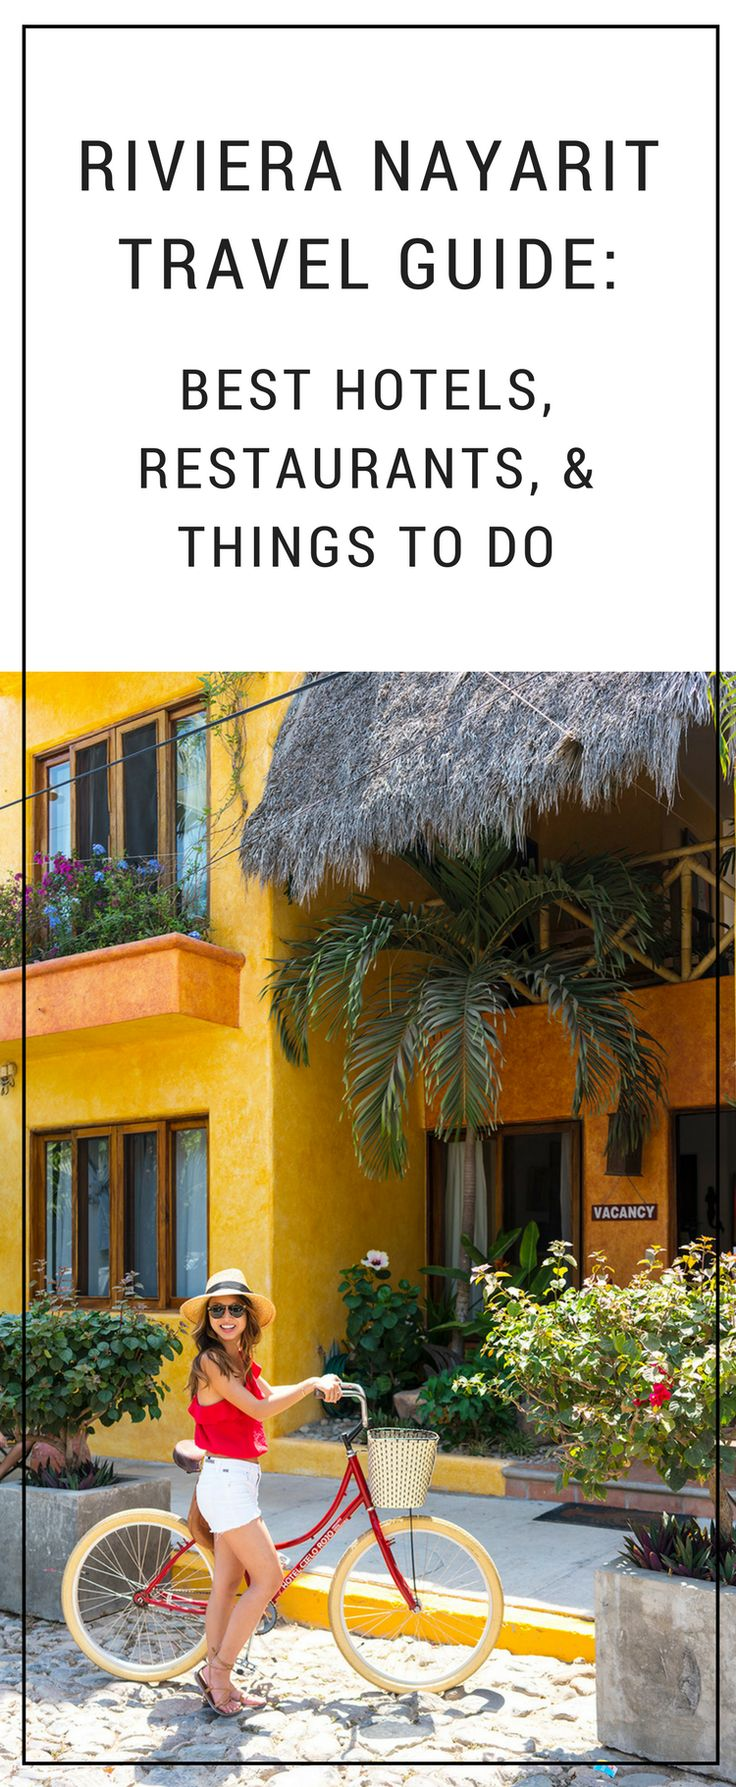 Riviera Nayarit Travel Guide: Best Hotels, Restaurants, & Things To Do  Where to stay and things to do in Mexico's Riviera Nayarit - Sayulita, Punta Mita, San Francisco, and Marietas Islands.